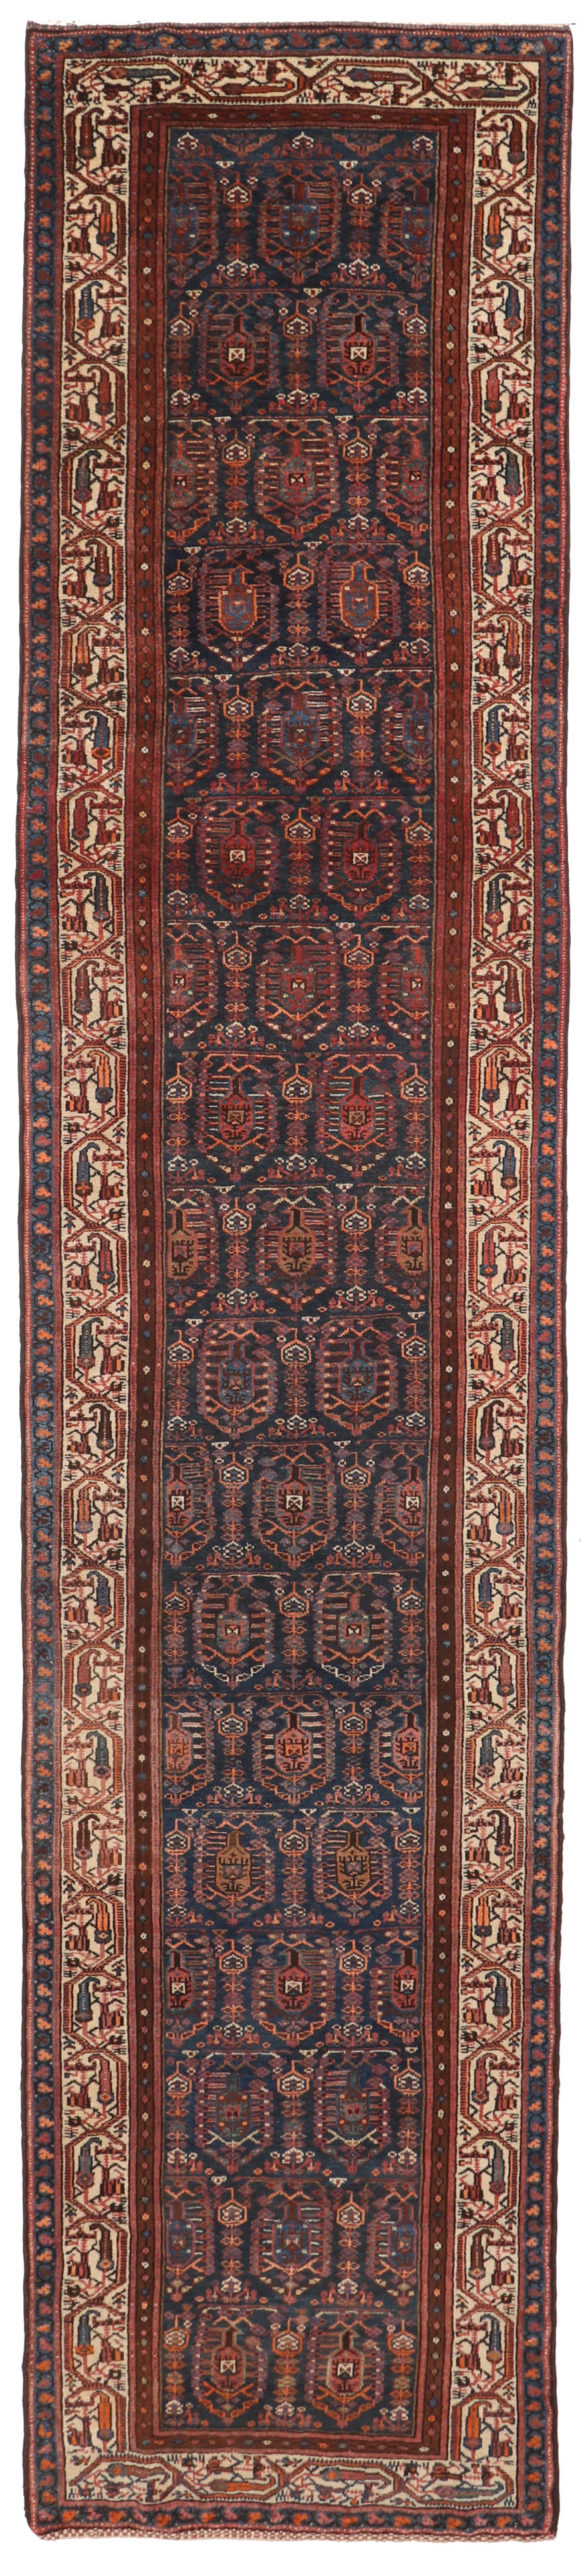 361841 Malayer Circa 1910 Perfect Condition Size 510 X 110 Cmcm 1 Scaled